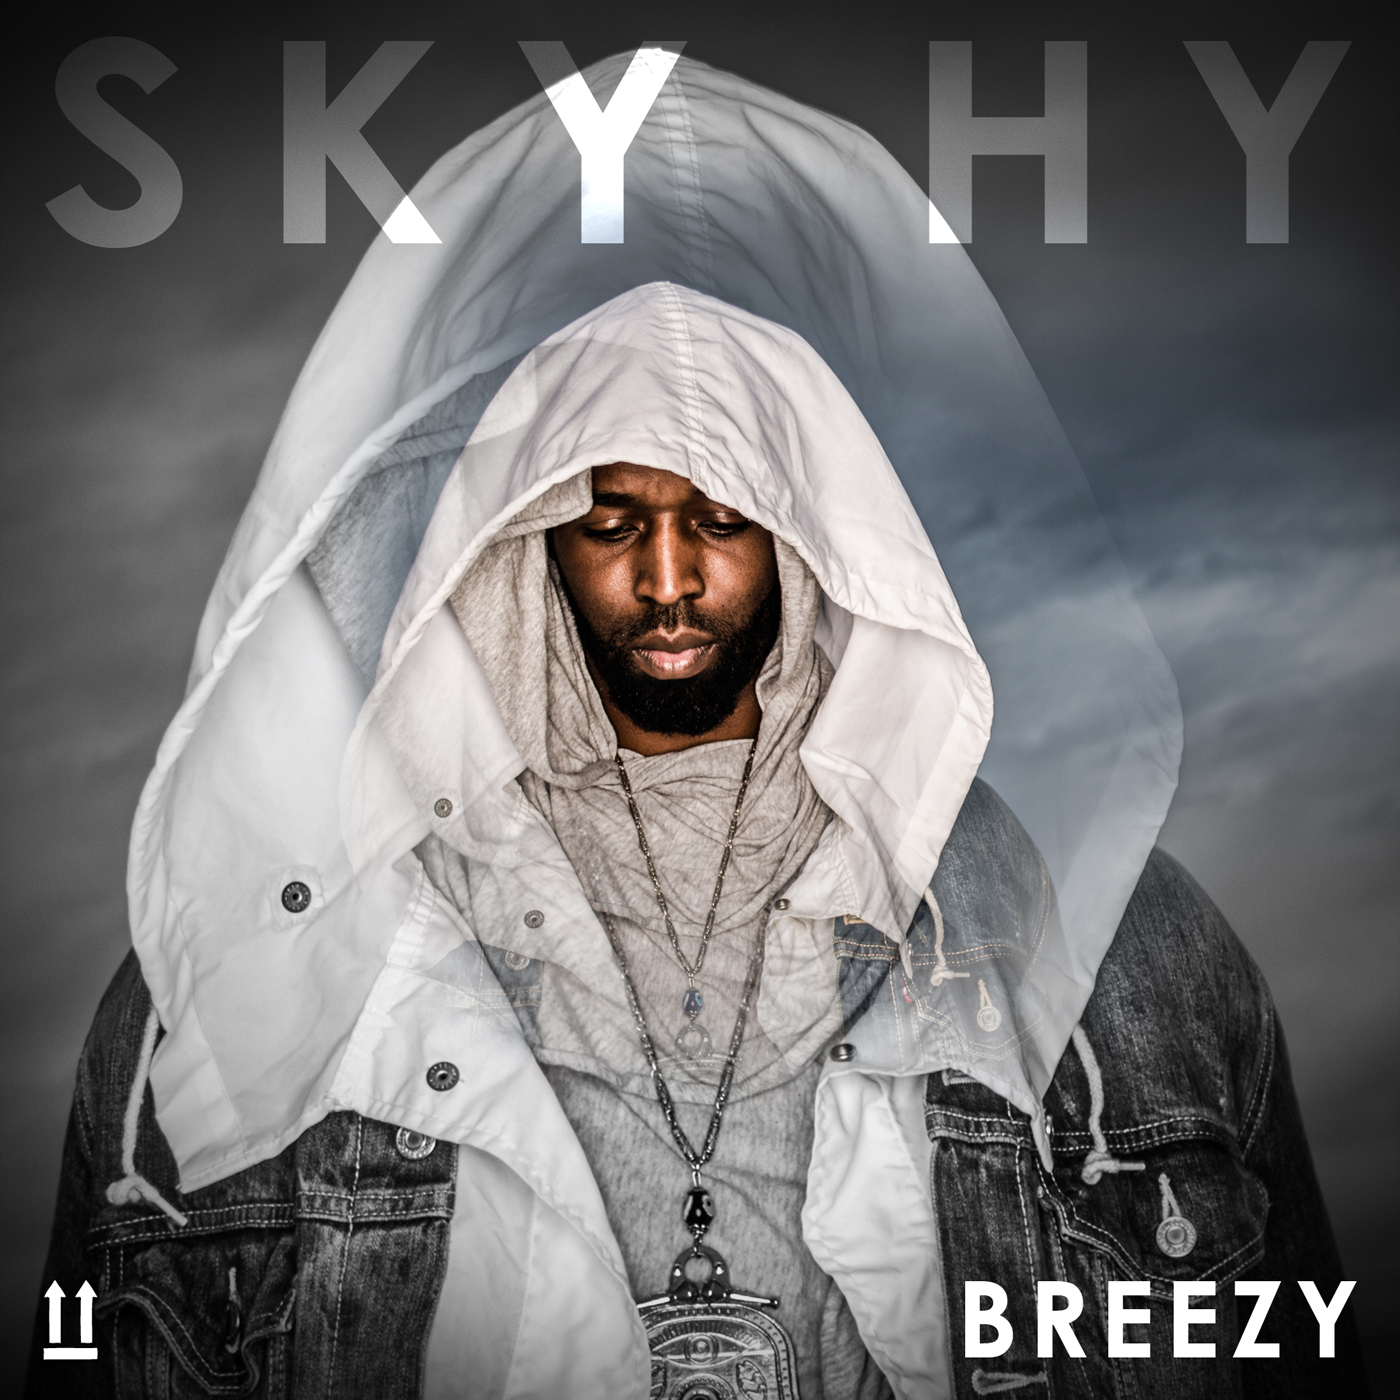 BREEZY - Sky Hy ft Tai Upgrade Rotan